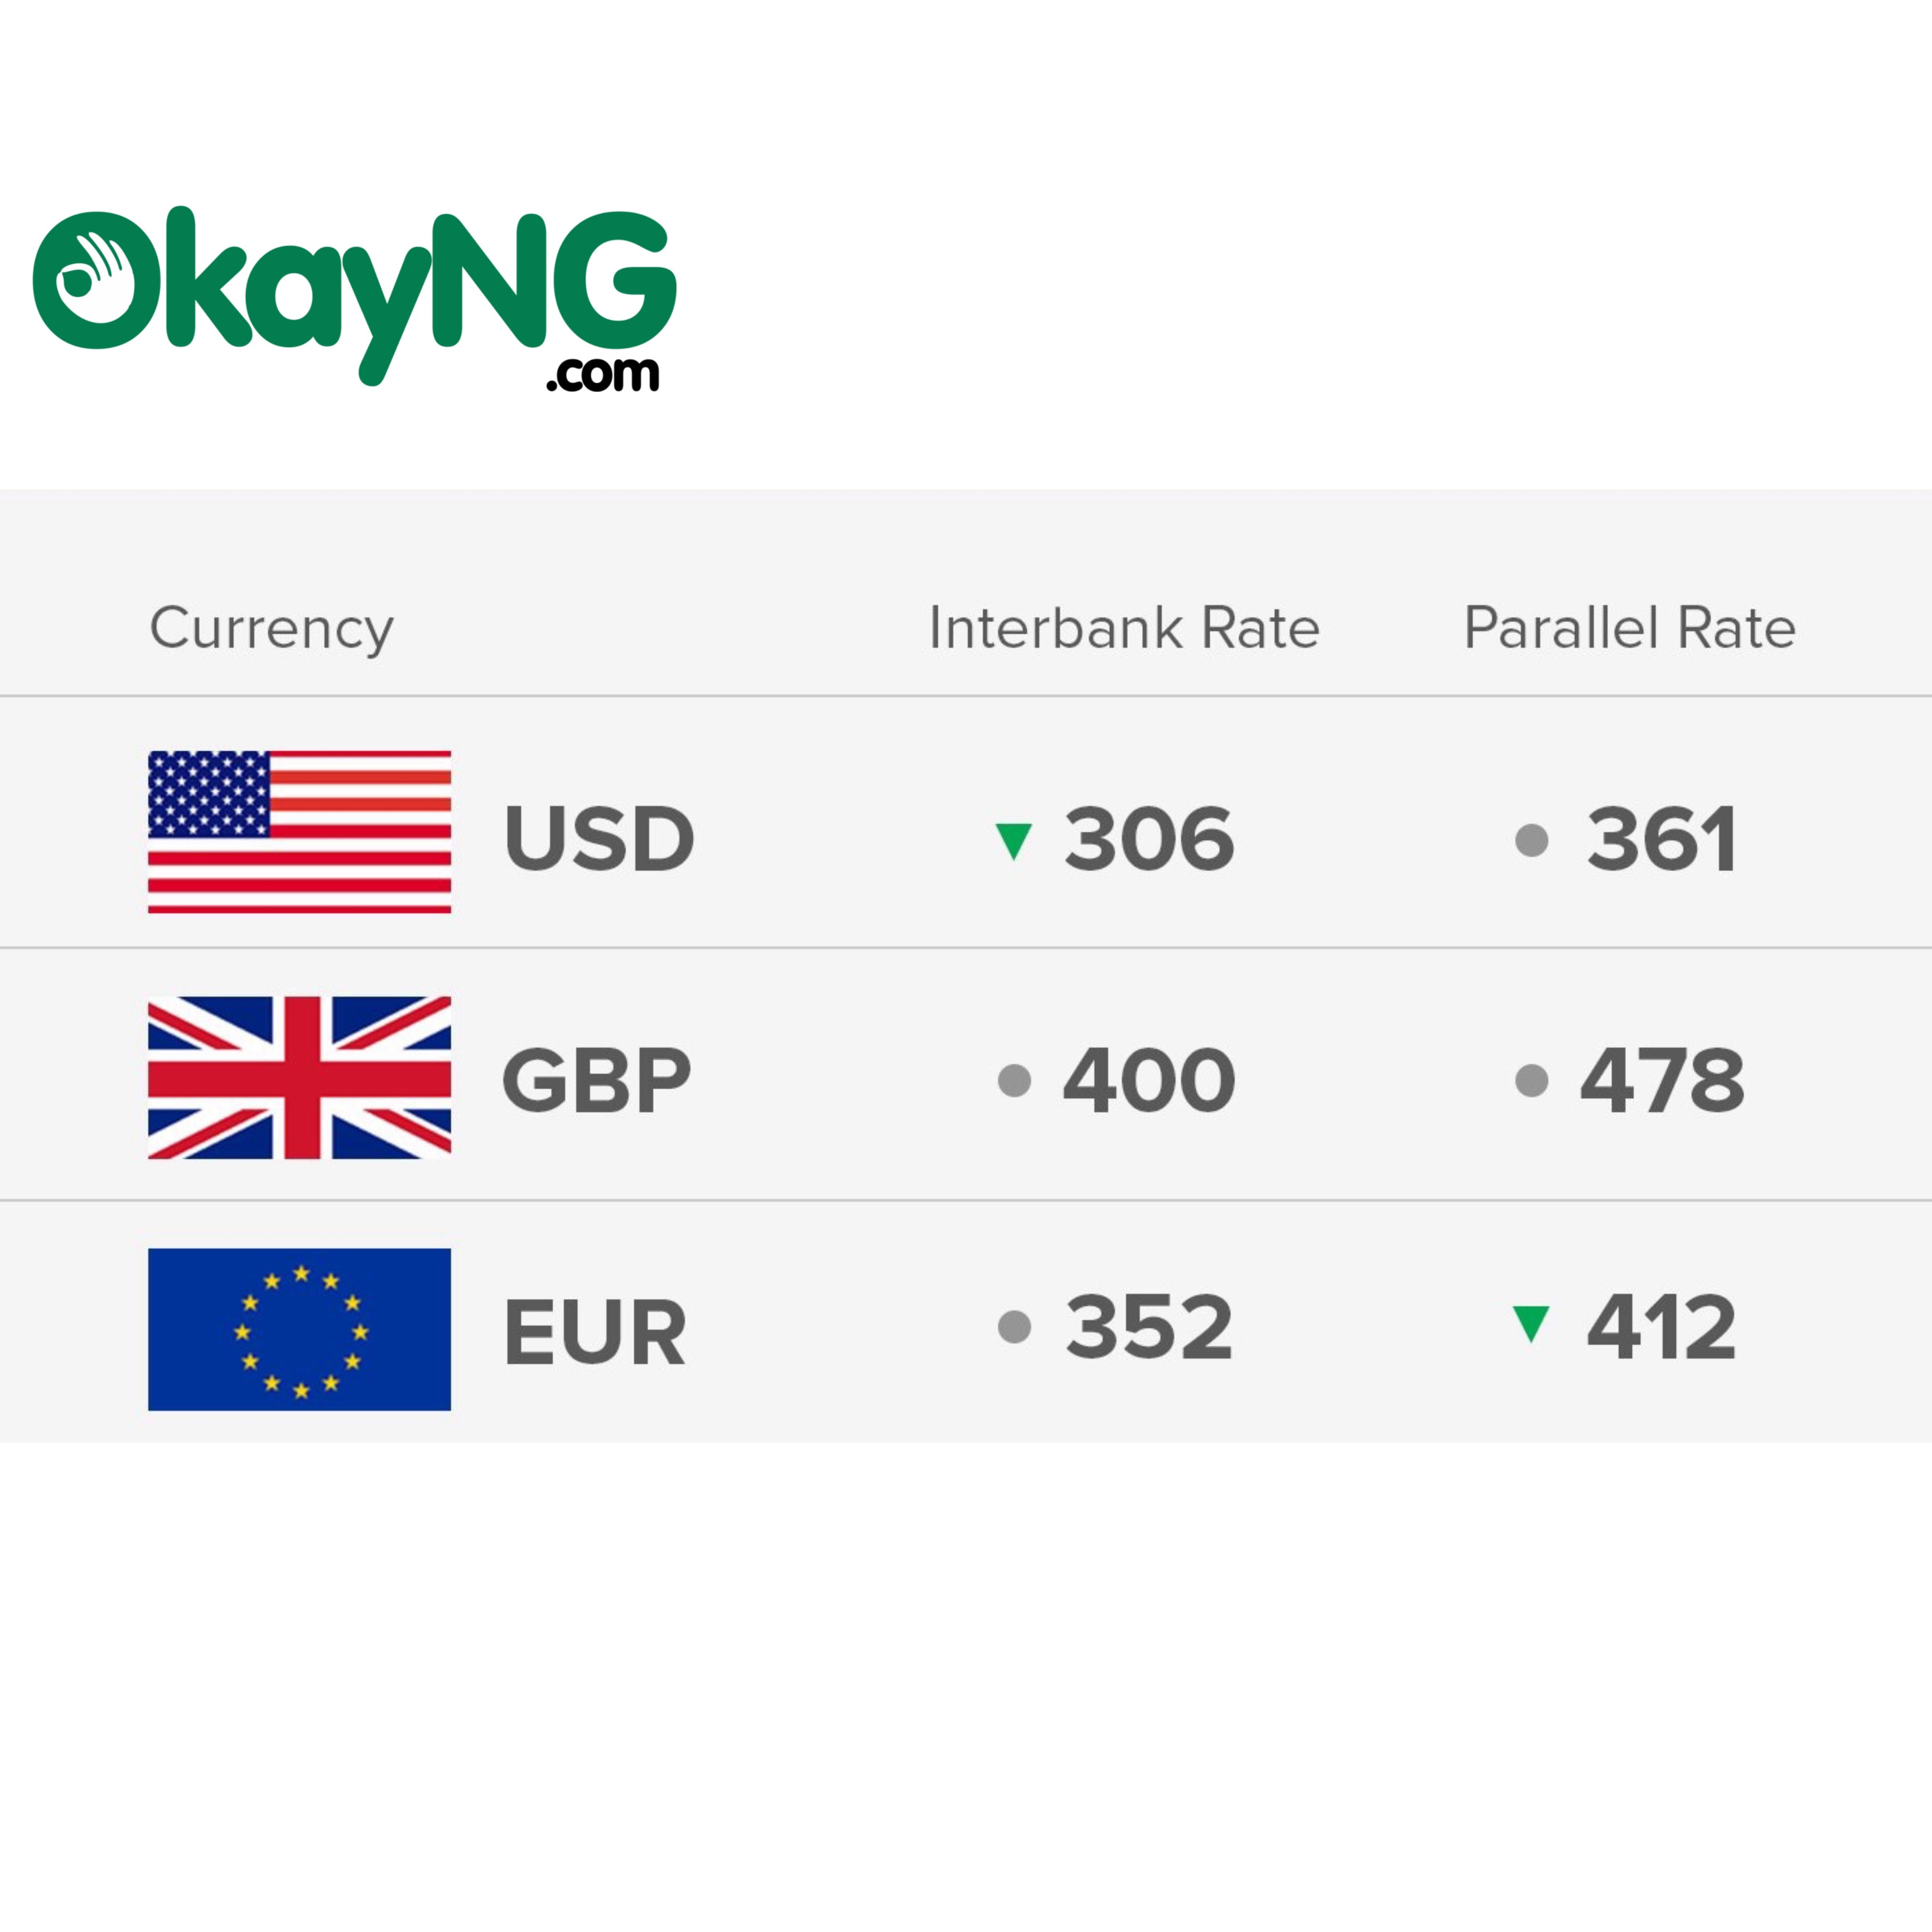 Exchange Rate 10/10/18: Today's Naira Rate Against Dollar, Pound And Euro - OkayNG News